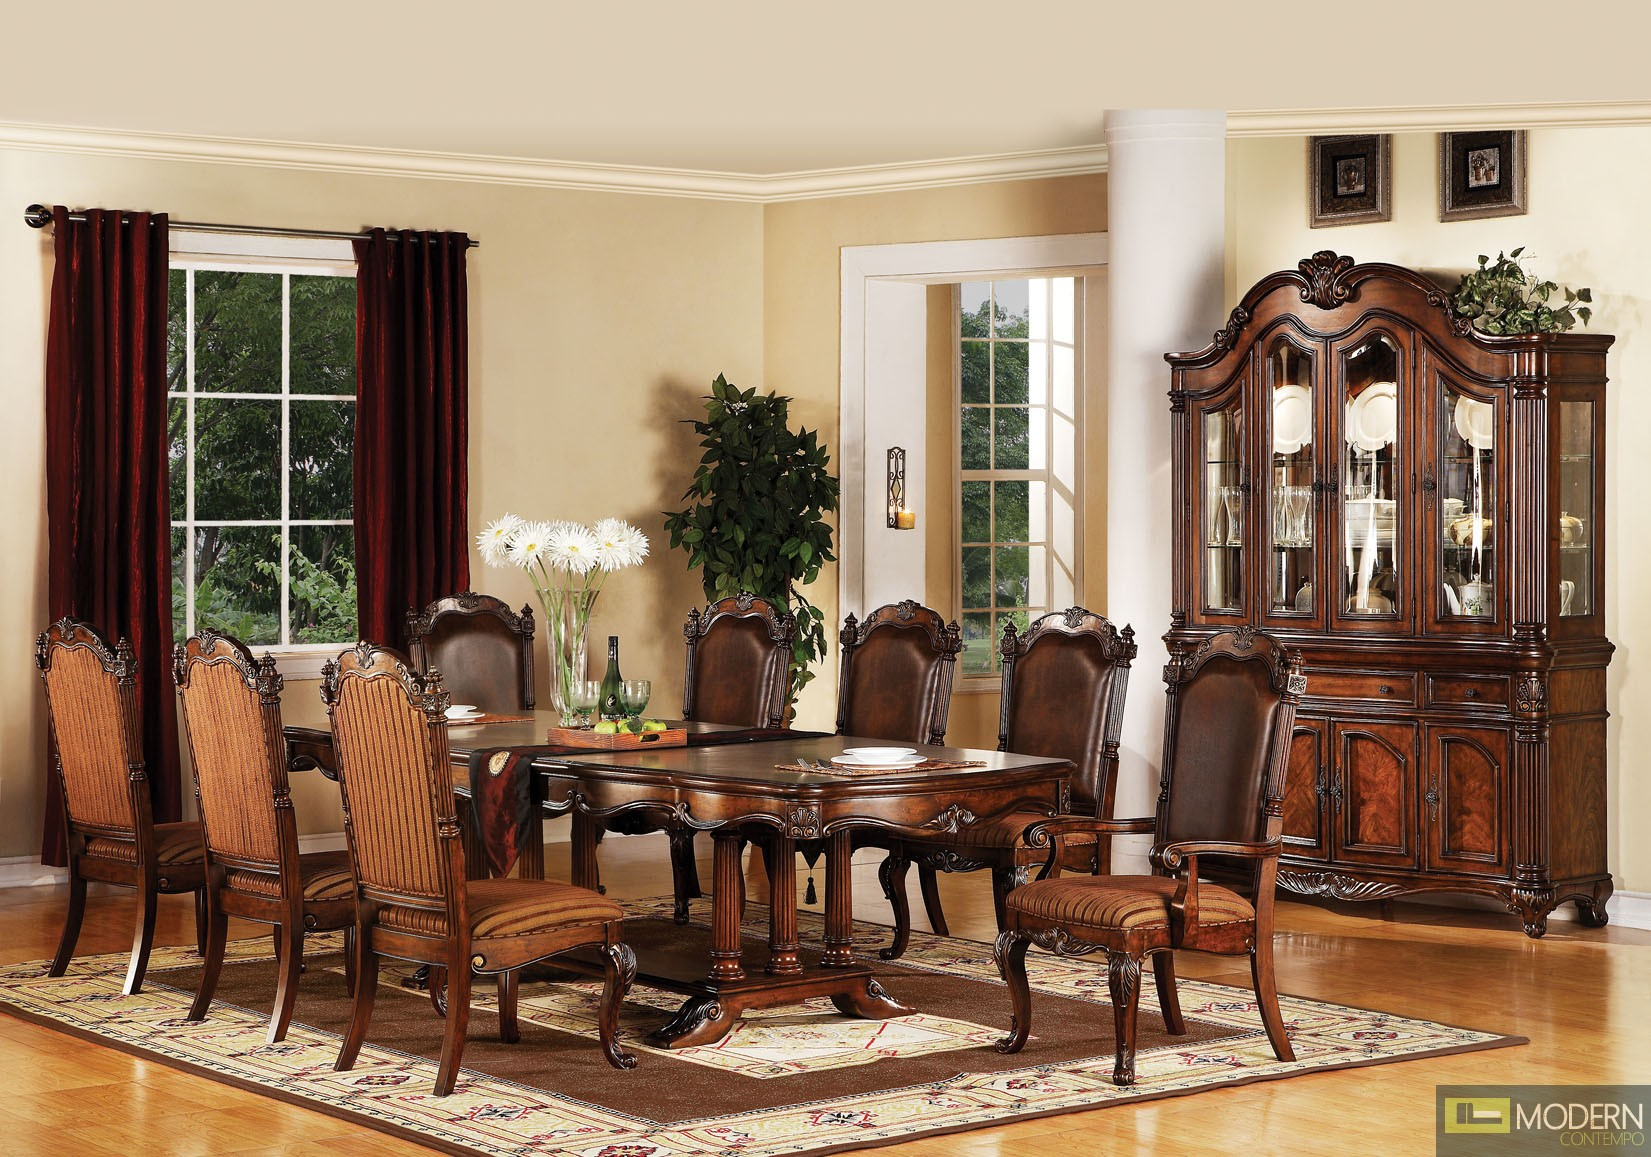 60030 Remington Brown Cherry Finish Classic Dining Table by Acme